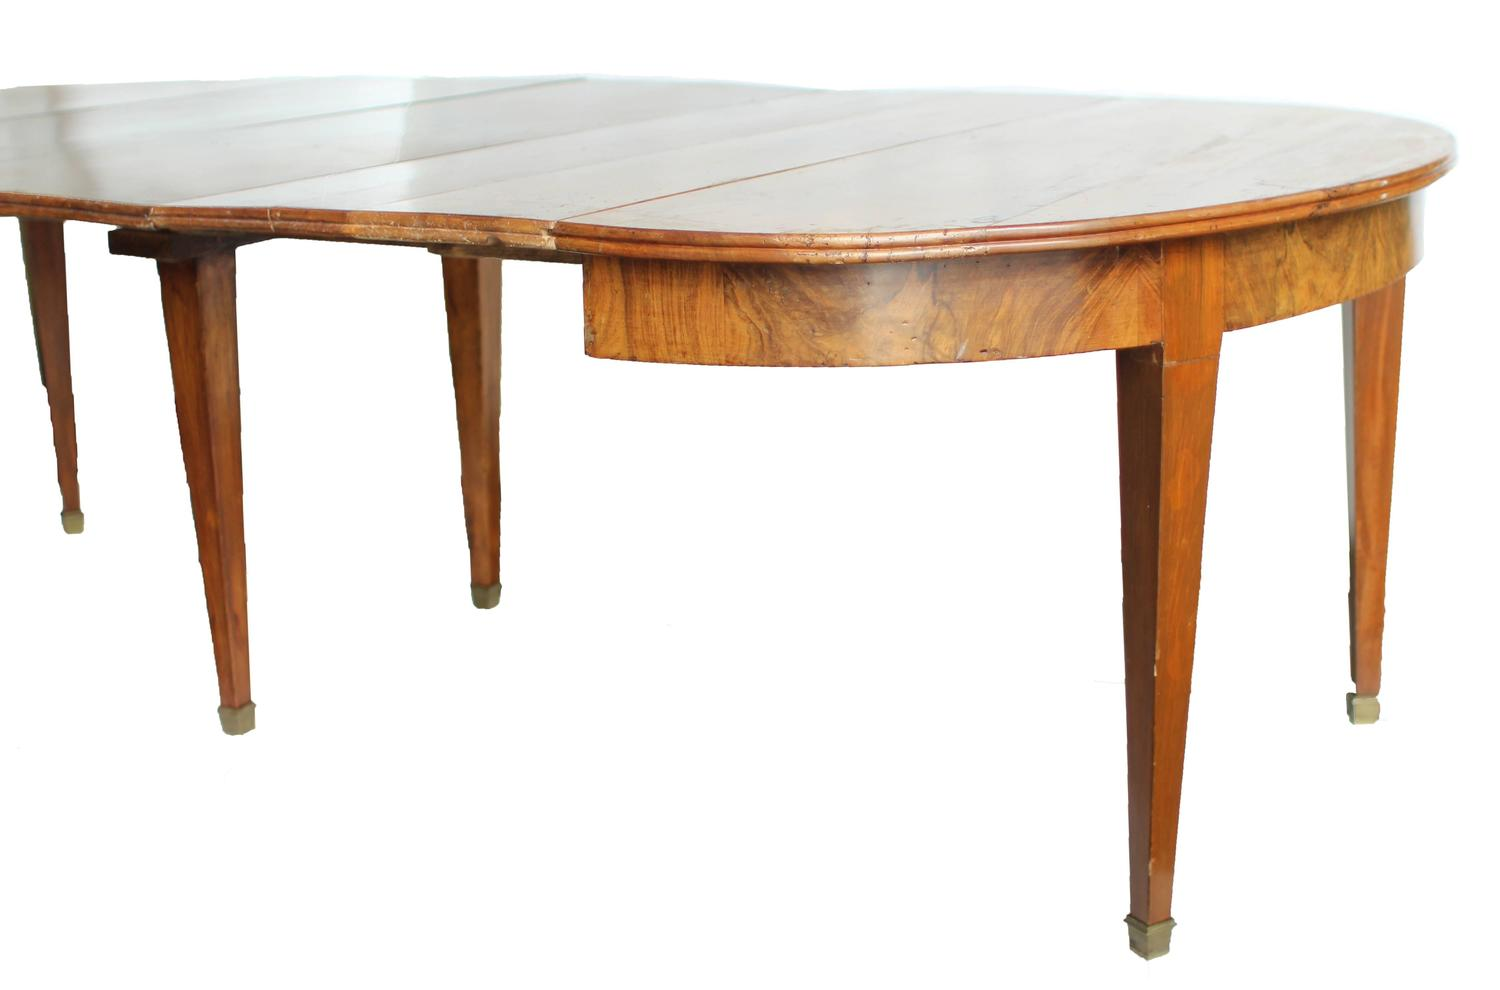 19th century french directoire walnut dining table for sale at 1stdibs